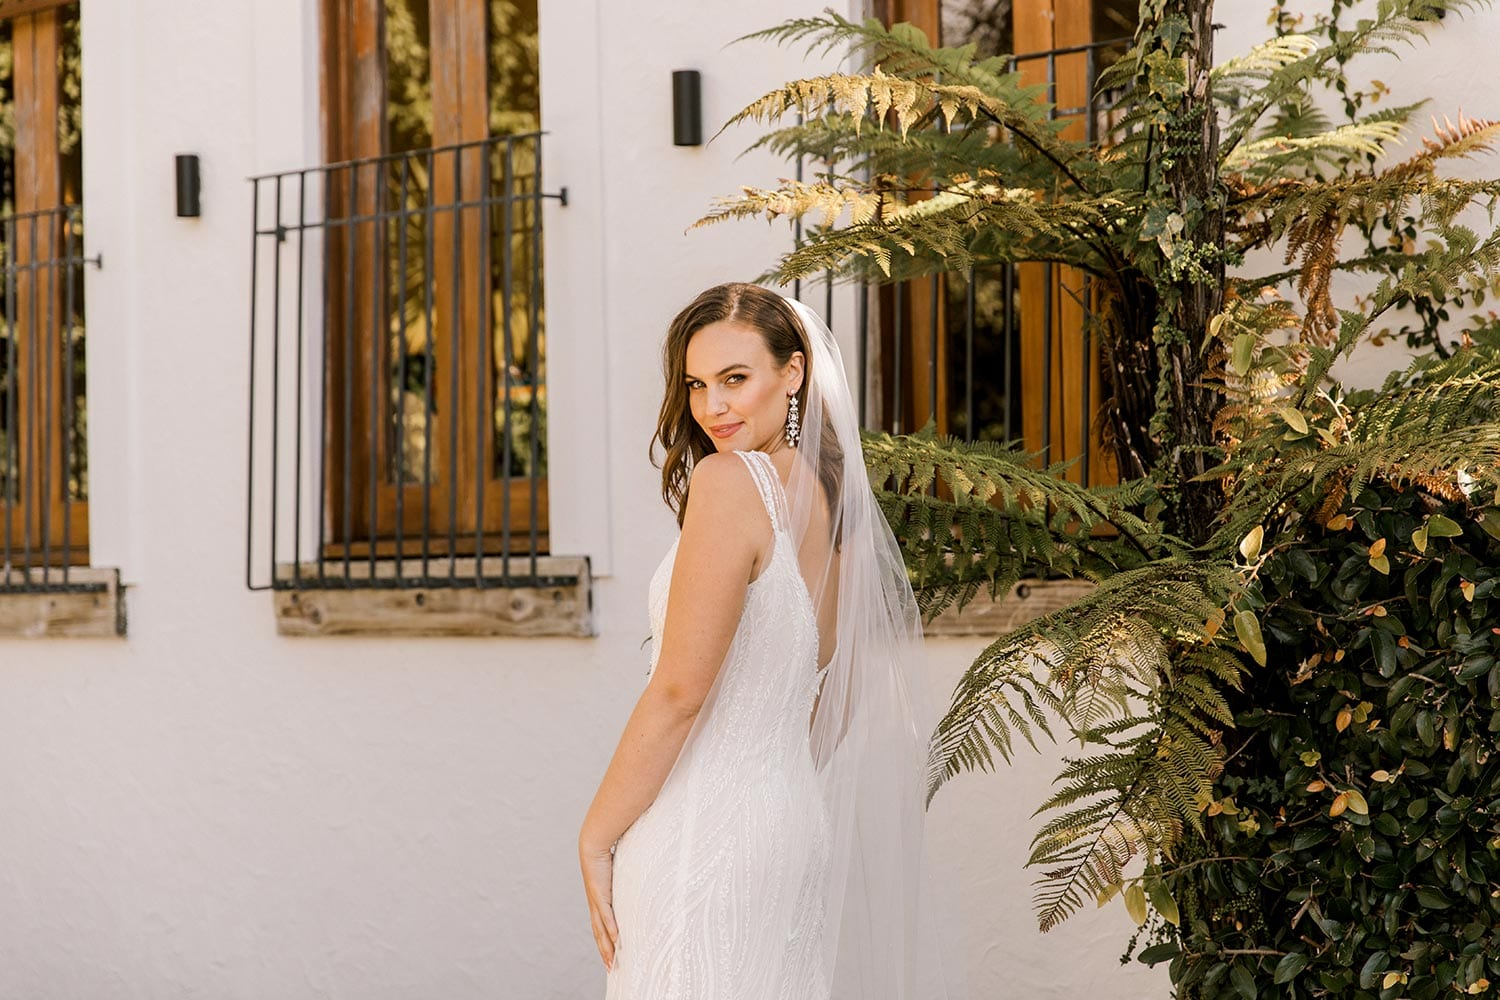 Kiera Wedding Dress from Vinka Design. Beautifully beaded lace wedding dress. Deep V-neckline both front and back is complemented with delicate sheer lace shoulder detail & structured bodice. Close up detail of dress model looking back over shoulder. Photographed at Tui Hills.